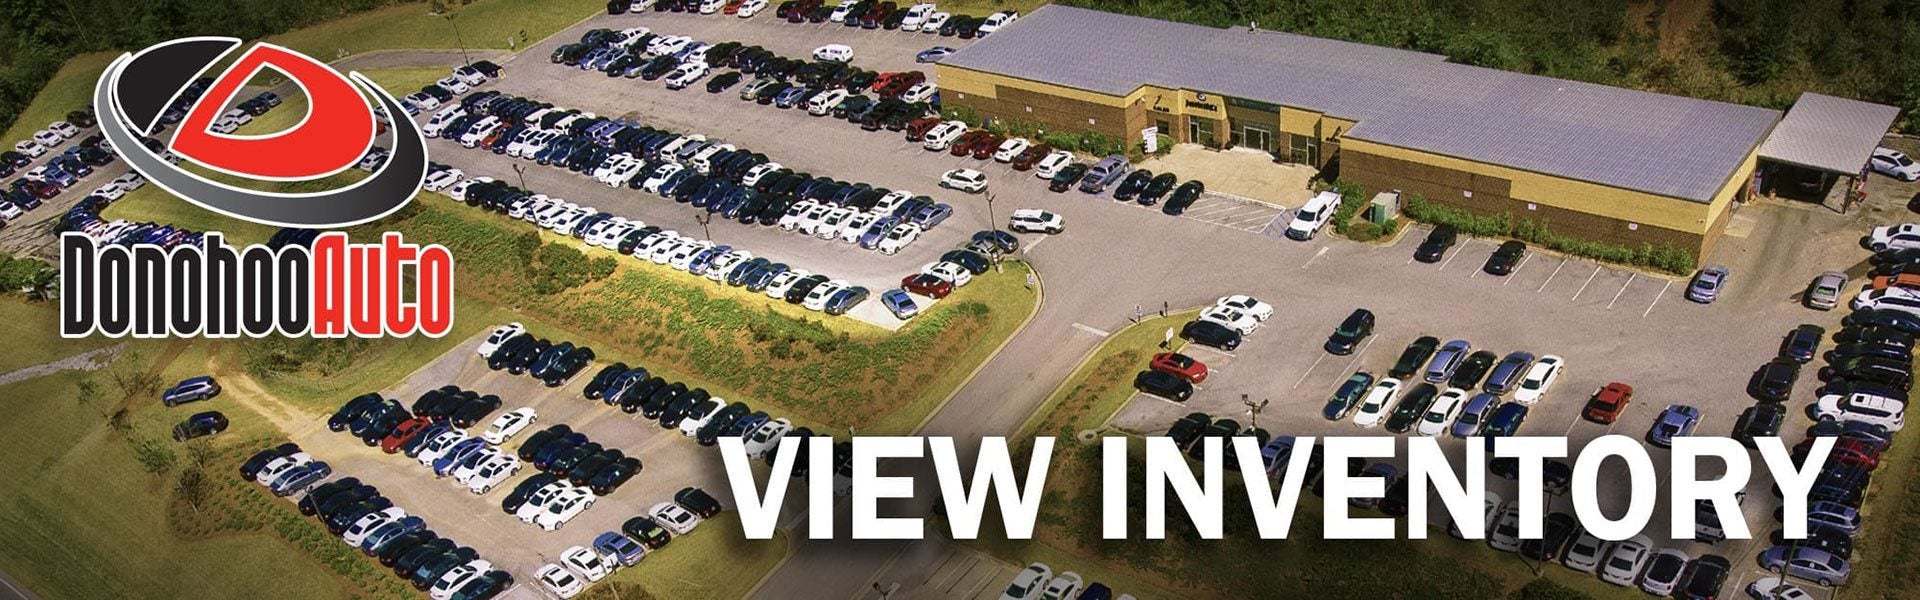 Donohoo Auto Your Pre Owned Vehicle Dealer In Pelham Al